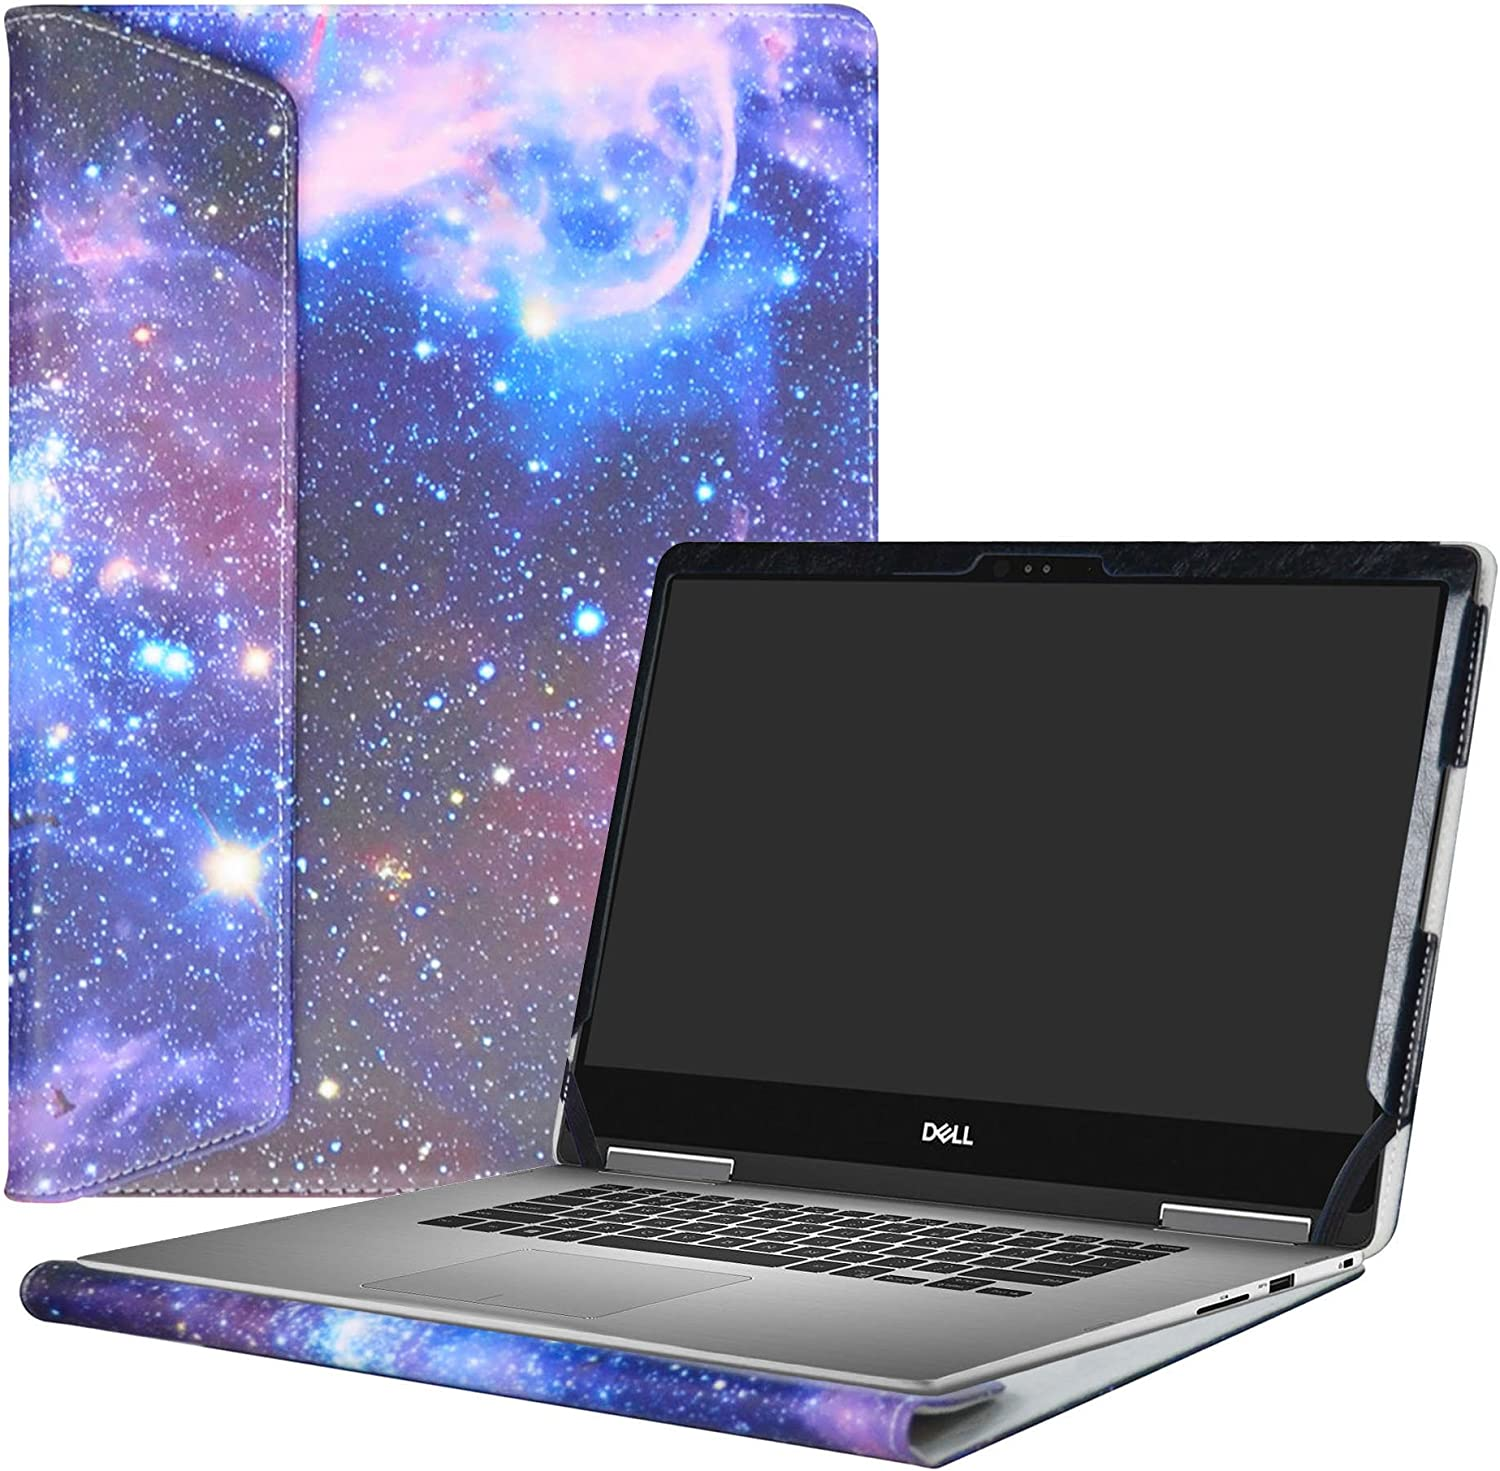 """Alapmk Protective Case Cover for 13.3"""" Dell Inspiron 13 2-in-1 7373 i7373 / Inspiron 13 7370 i7370 Laptop(Warning:only fit Model 7373 7370),Galaxy"""